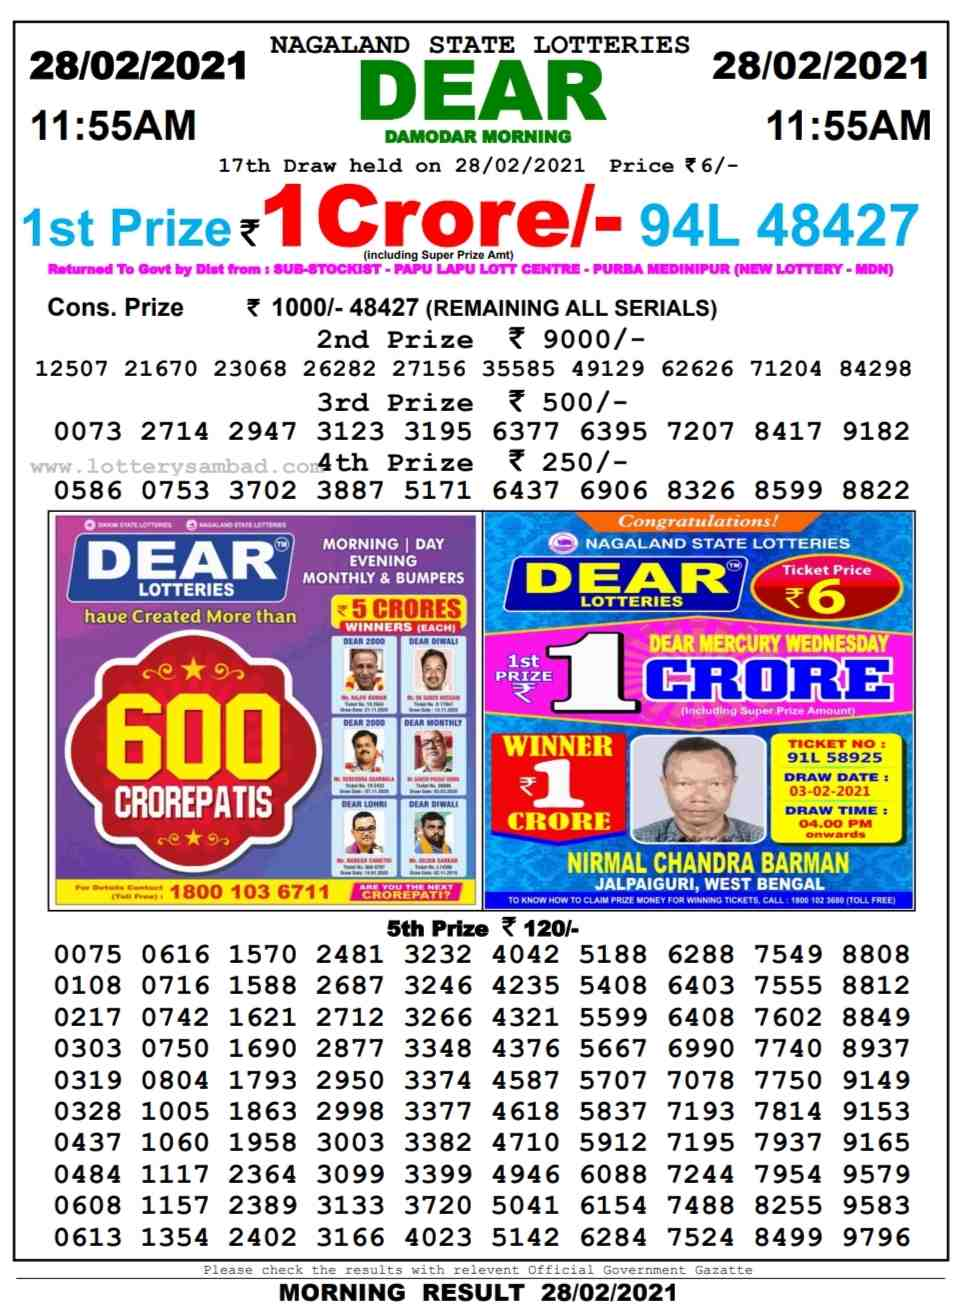 Sikkim Sambad lottery result at 11.55 on 02.28.2021